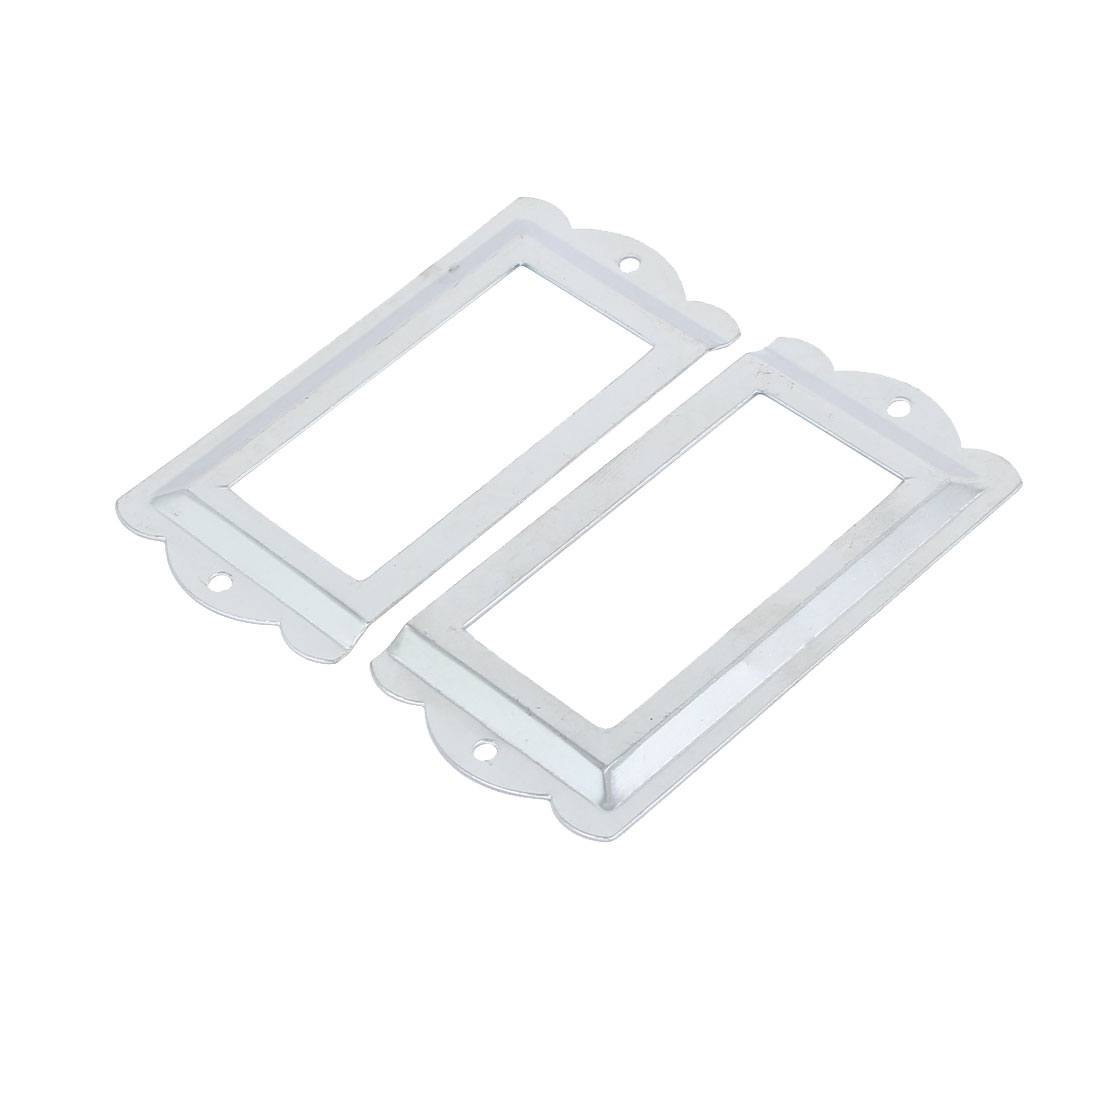 File Drawer Box Card Tag Label Holders Frames Silver Tone 85mm x 42mm 8PCS - image 1 of 4